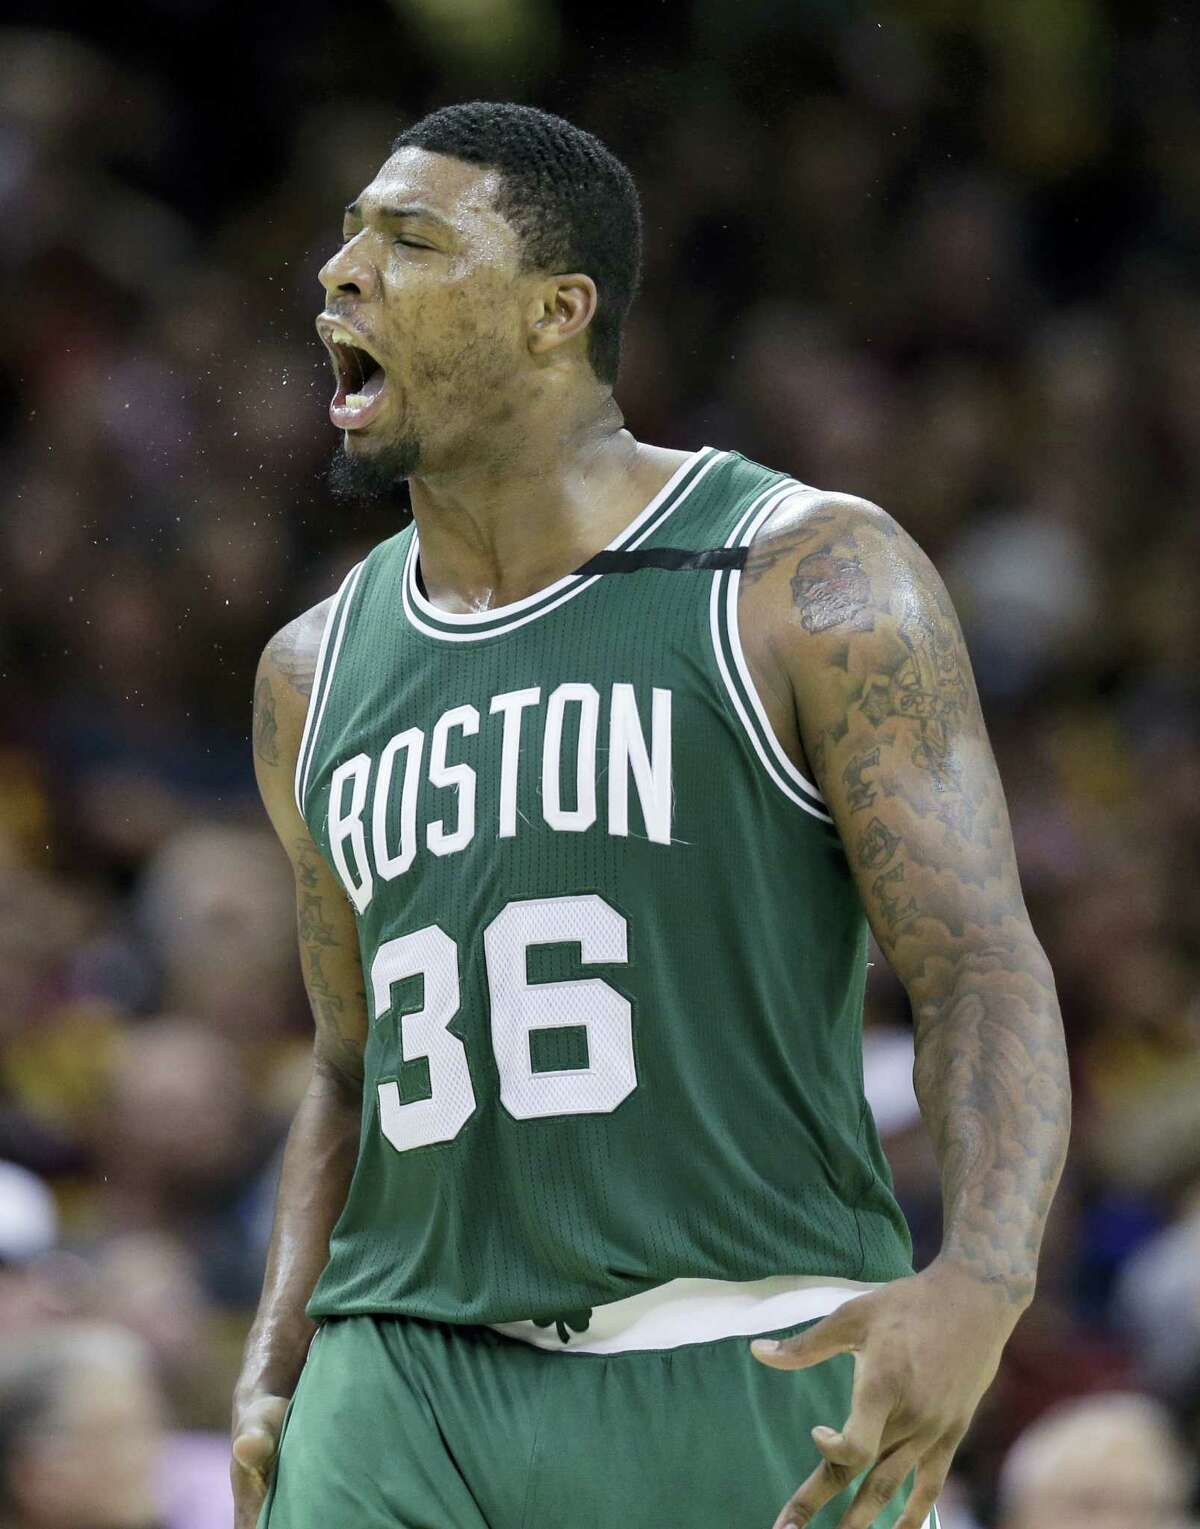 The Celtics' Marcus Smart (36) reacts after hitting a 3-pointer against the Cavaliers on Sunday.